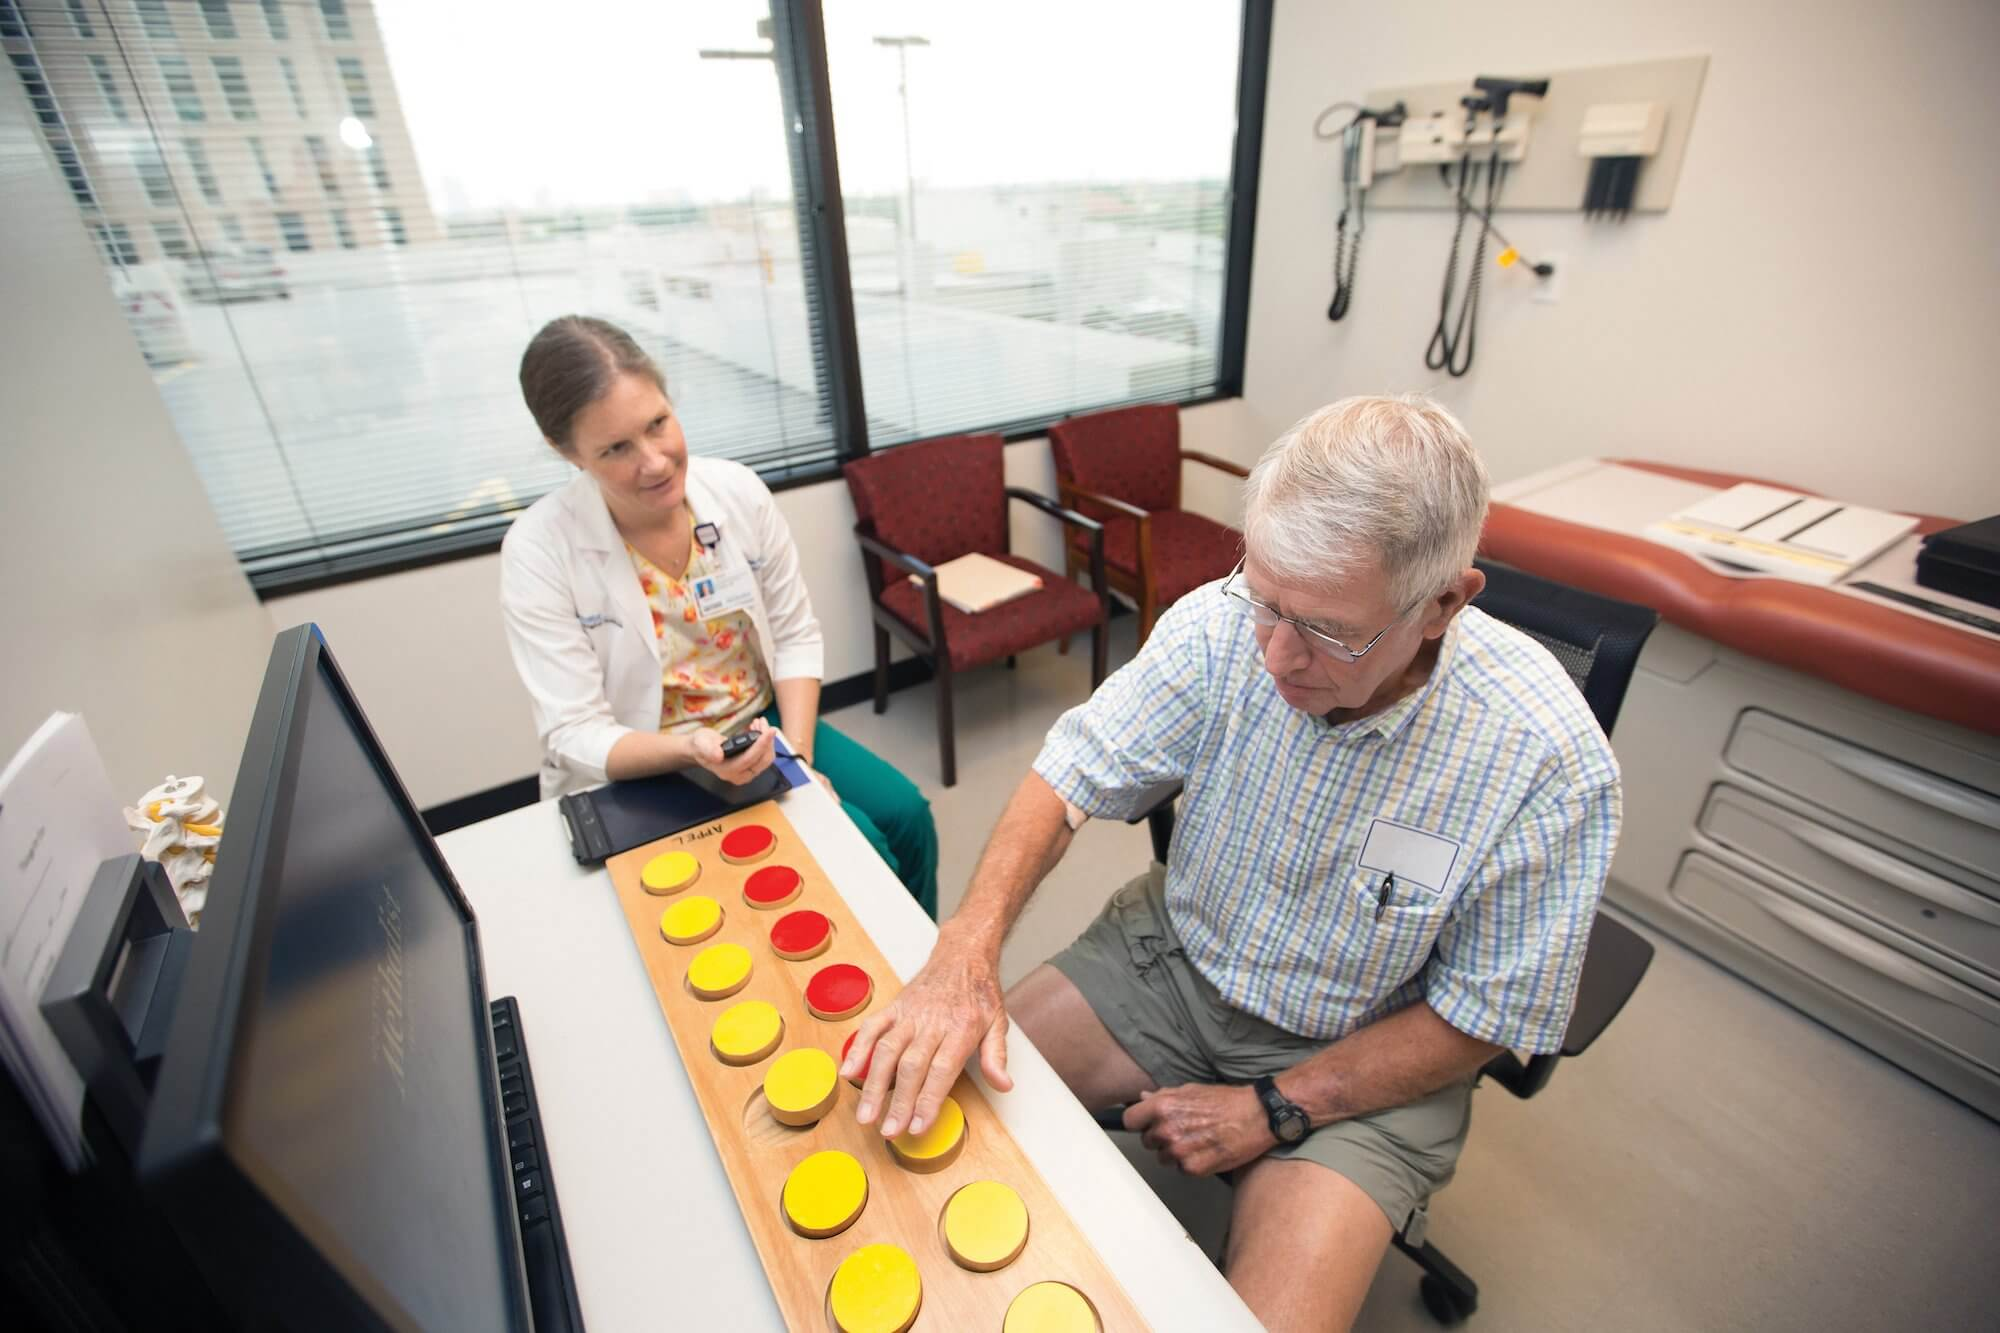 Karen Toennis, MDA/ALS Clinic coordinator, tests an ALS patient's fine motor skills using the Appel Rating Scale during a clinic session.